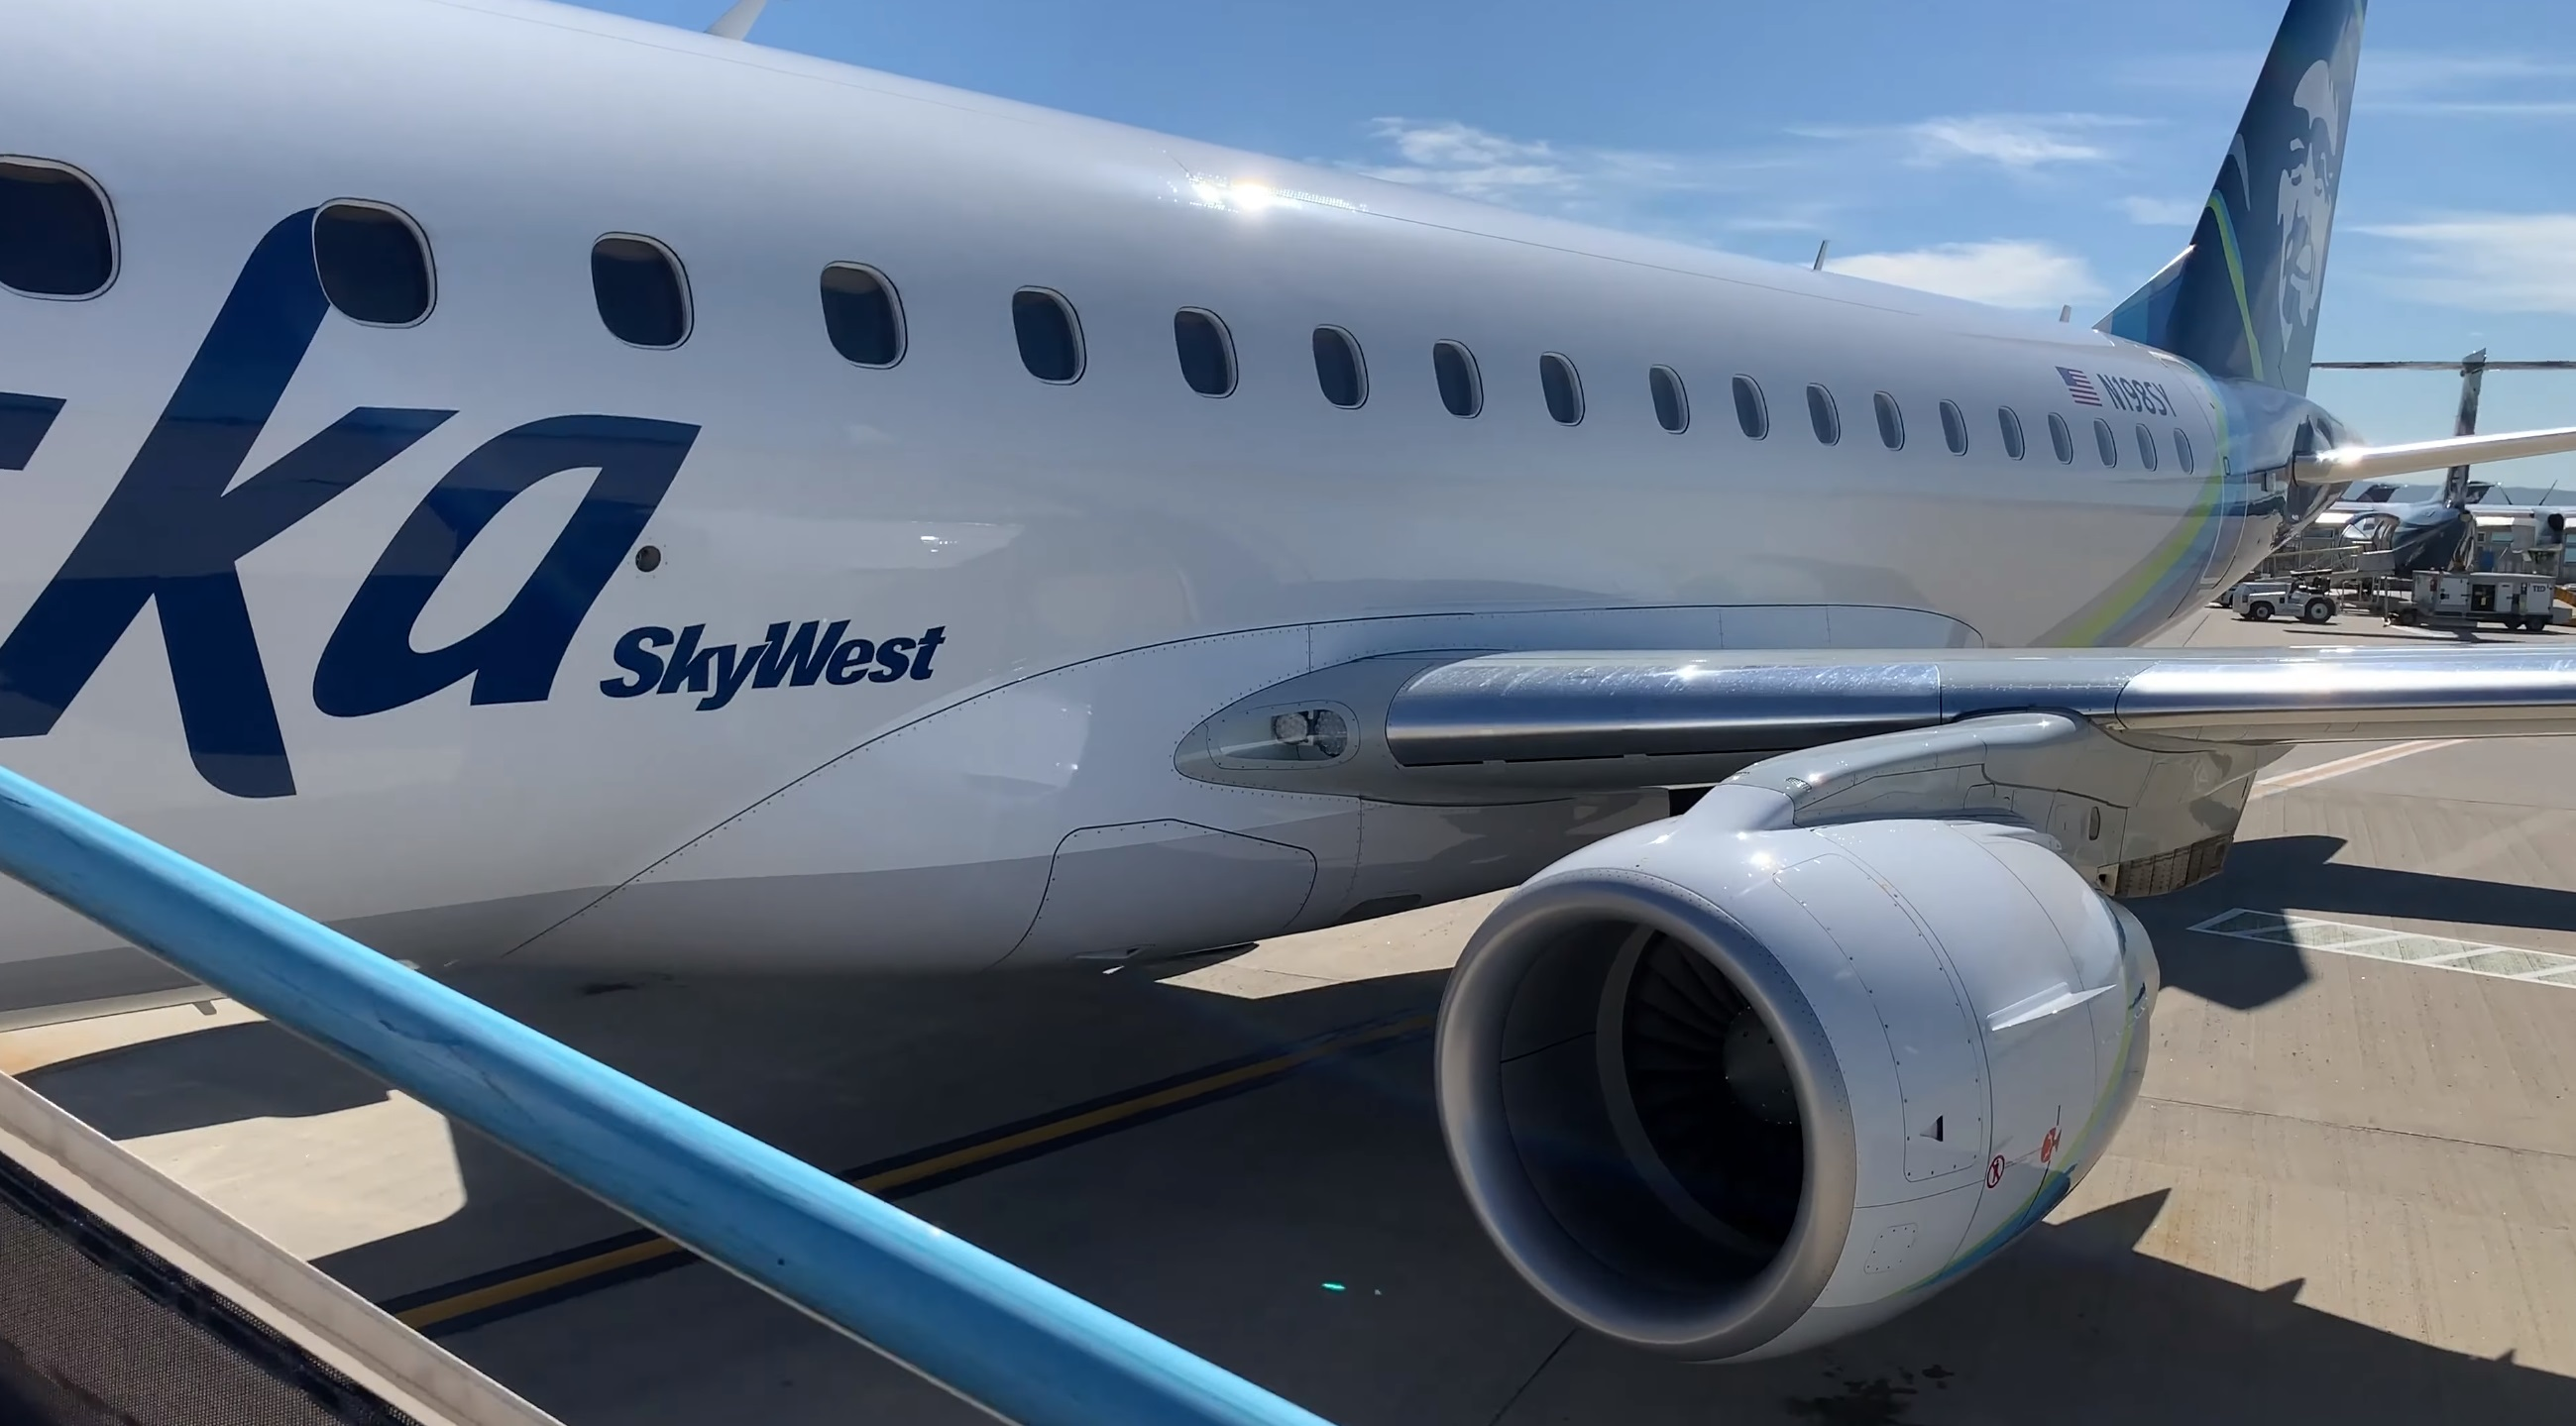 Alaska Airlines by SkyWest – Boise to Seattle on an Embraer 175